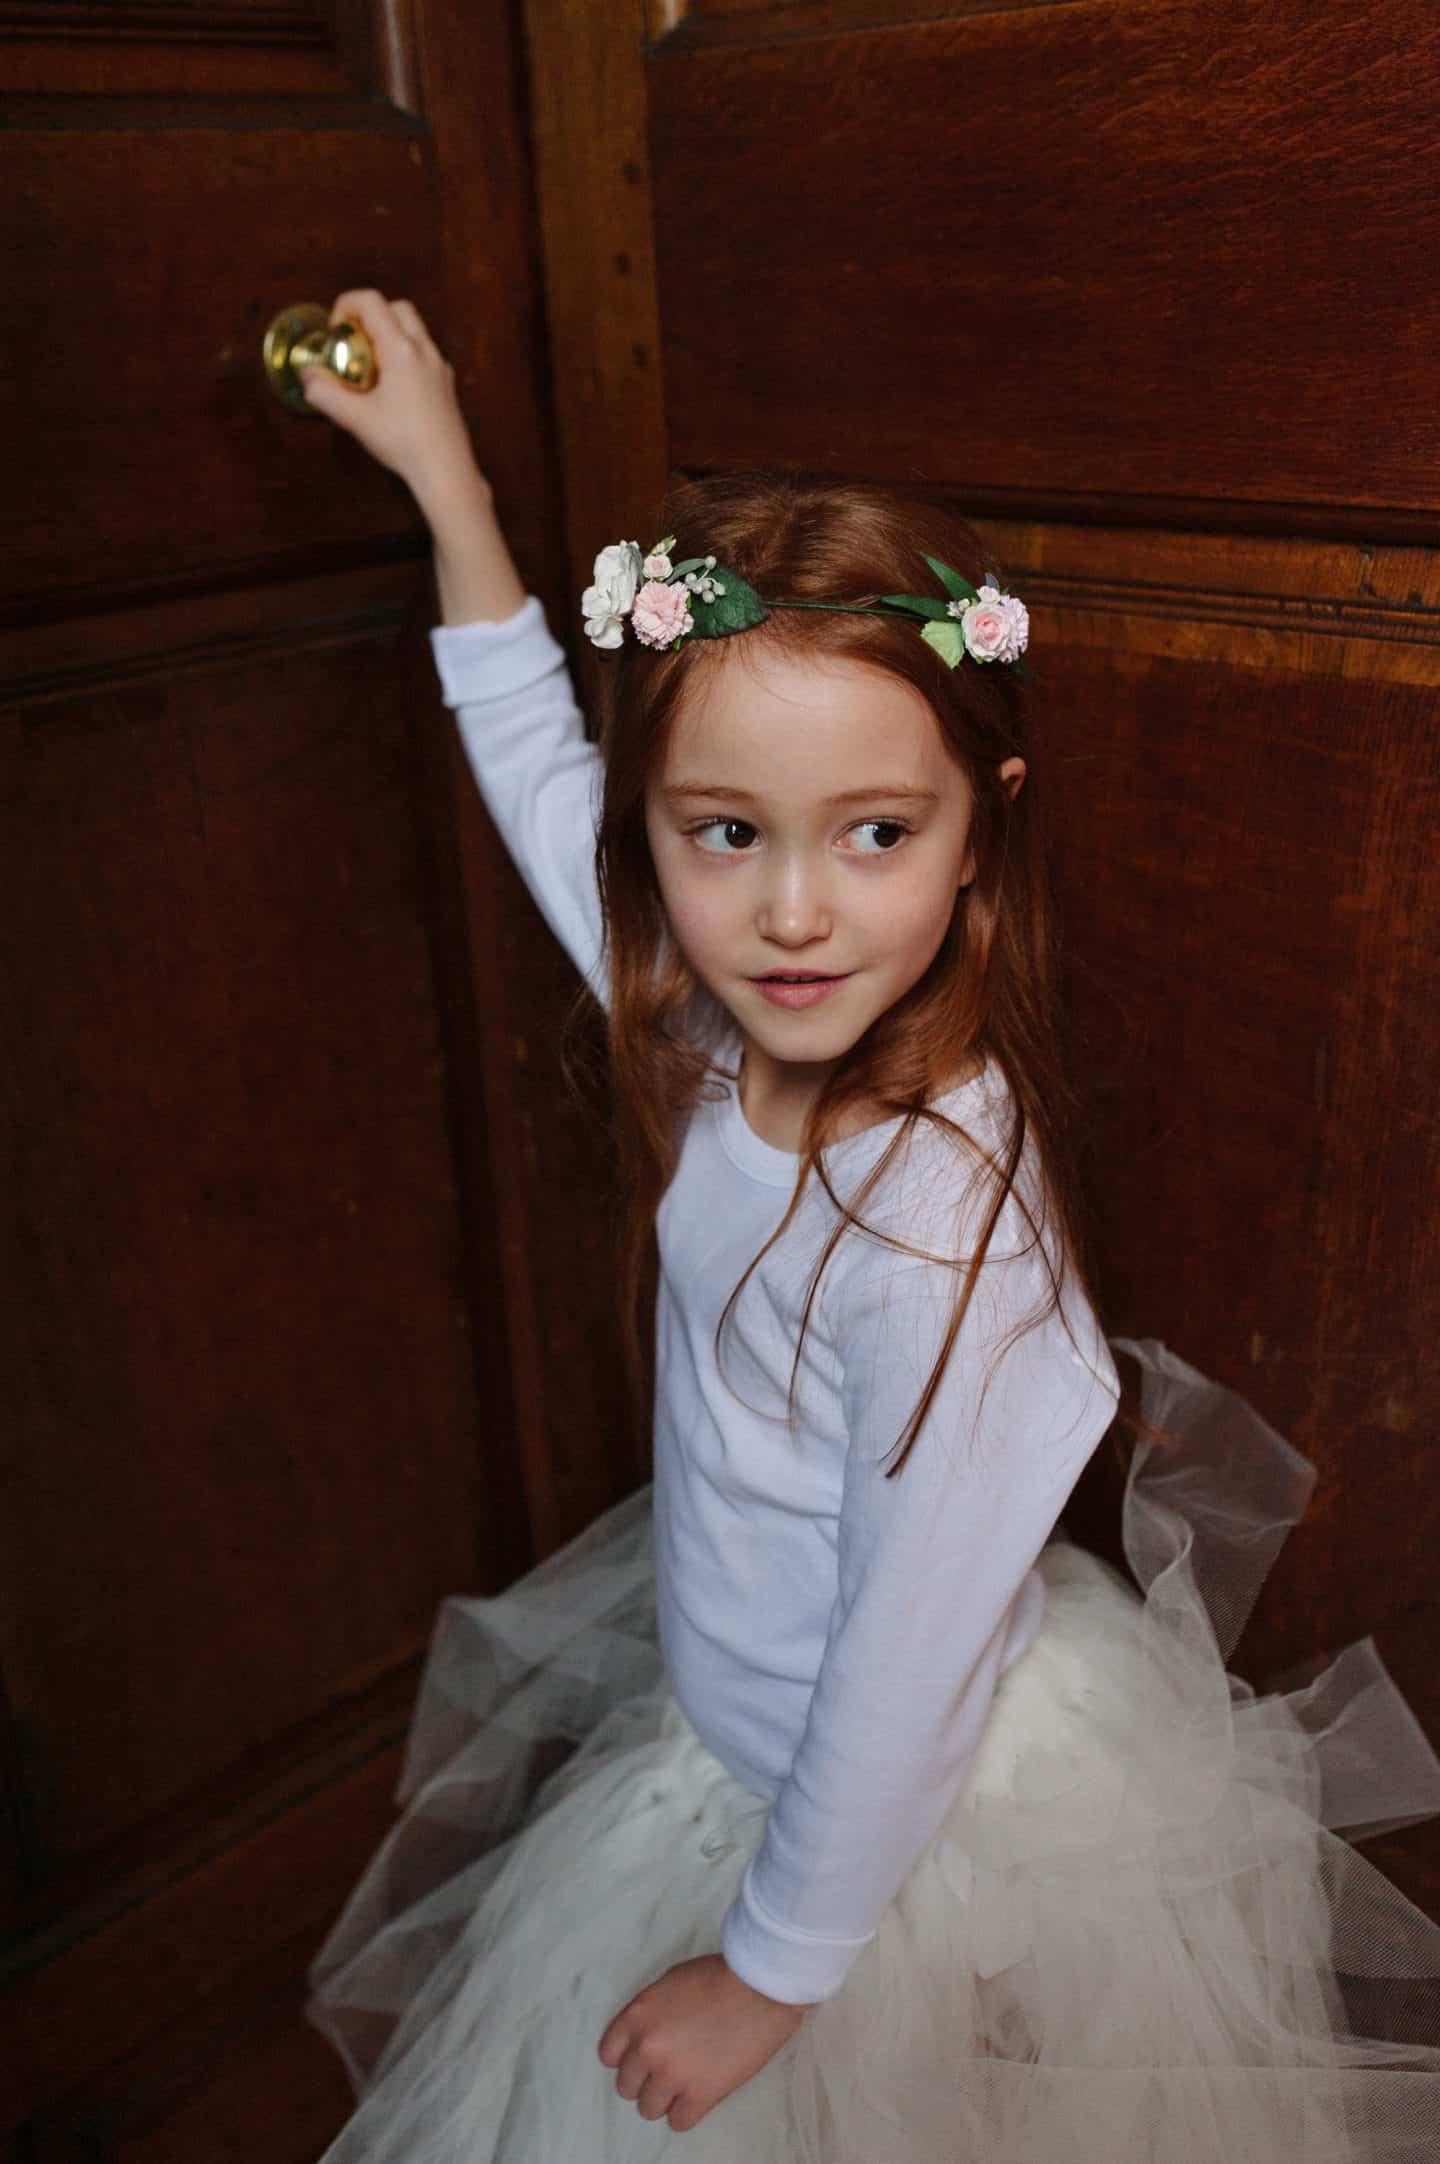 Ava wearing Mimosa Bridal Tulle Tutu and Floral Circlet Flower Crown